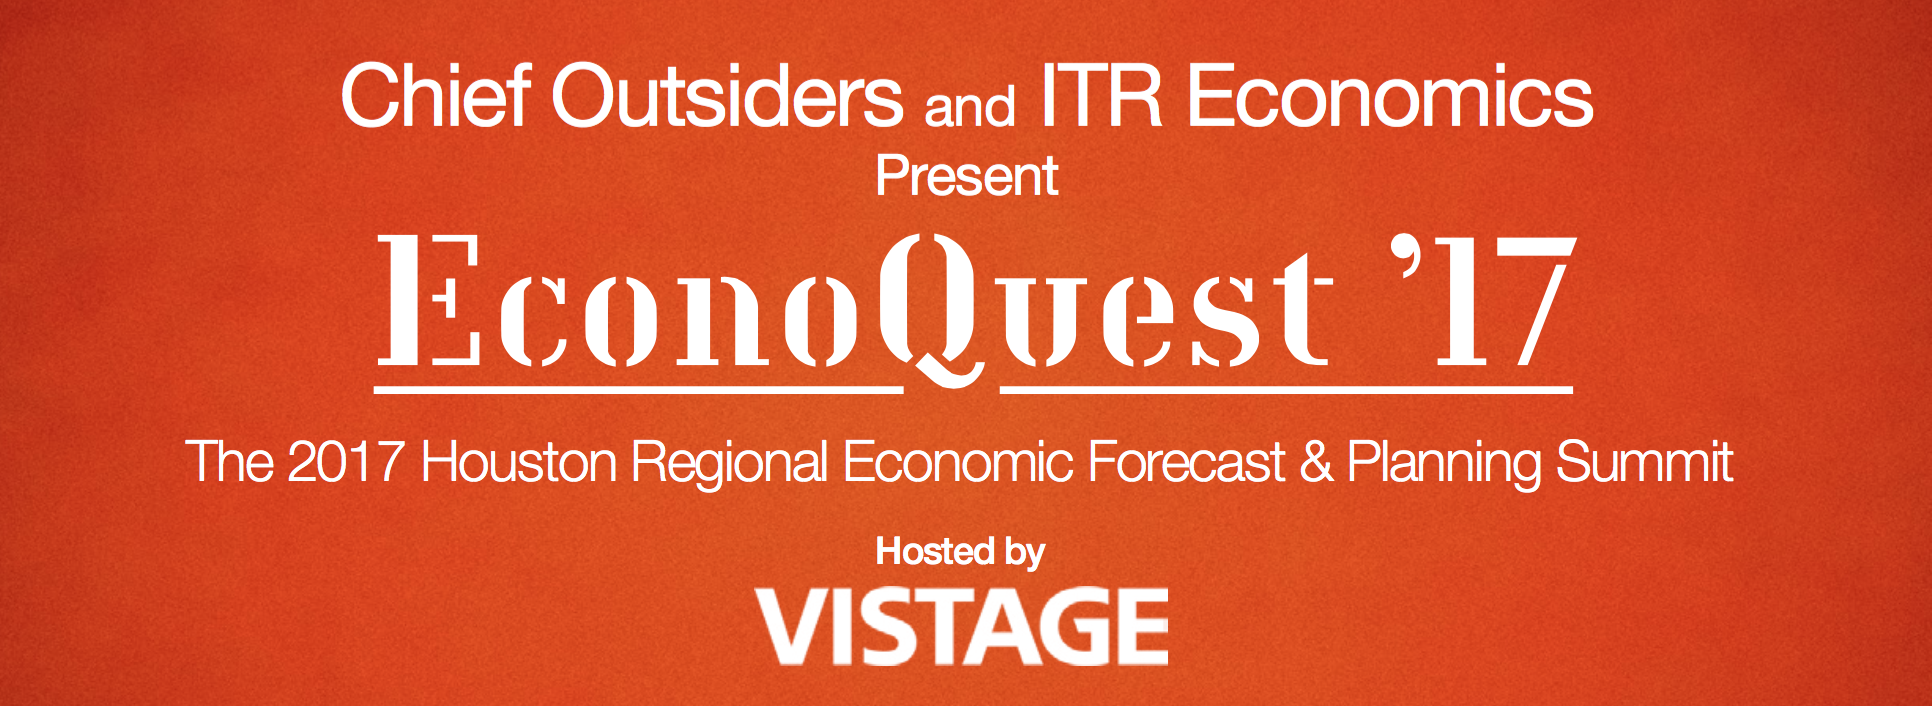 Chief Outsiders and ITR Economics to Present Econoquest '17 Economic Forecasting and Planning Summit